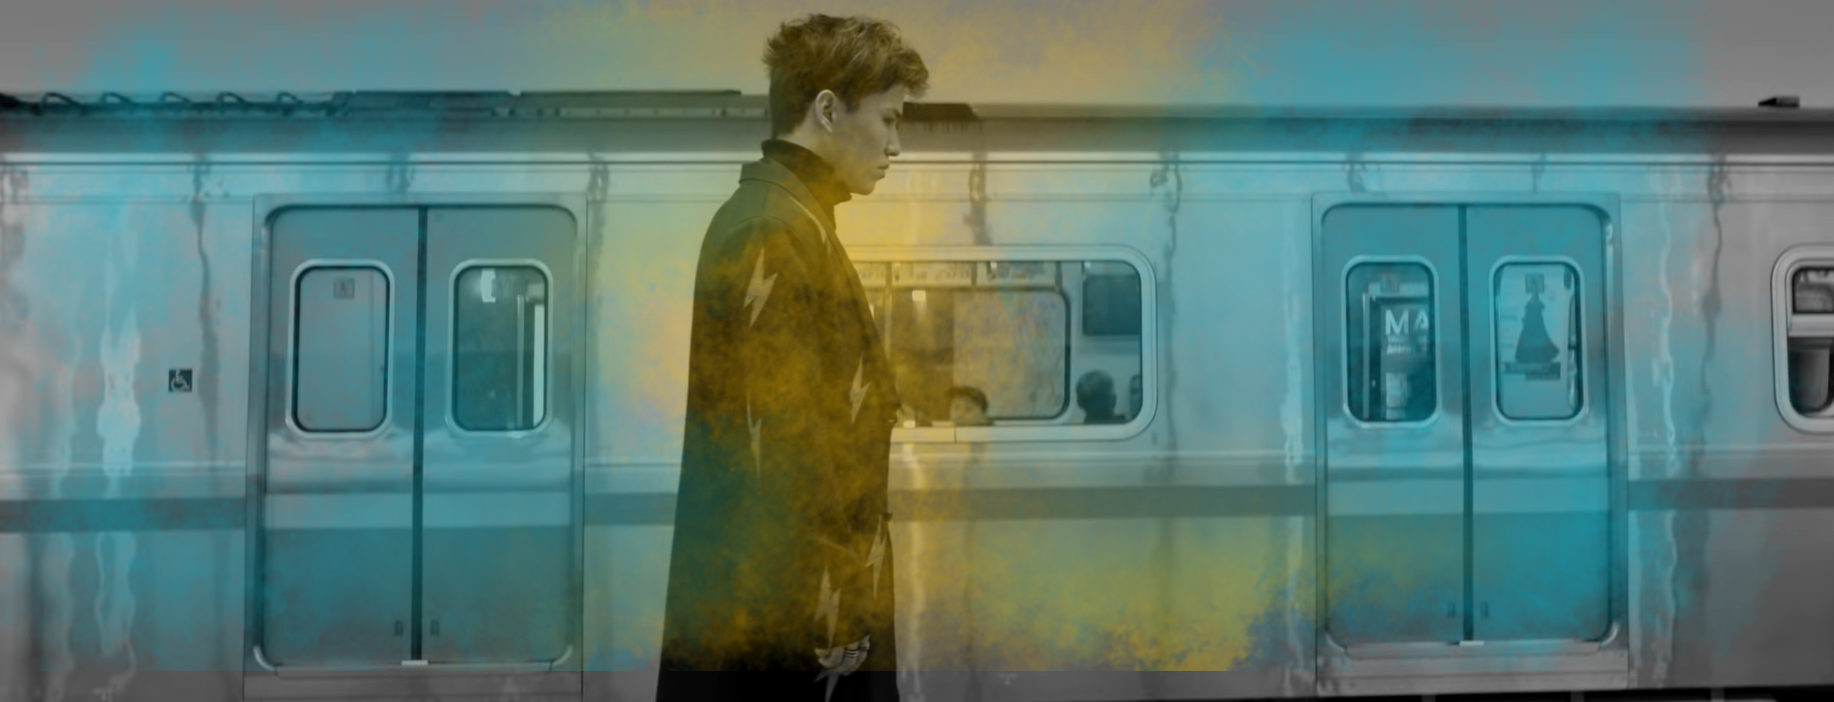 """Image of Alem standing in front of a subway train in the """"Kaytadan"""" video"""